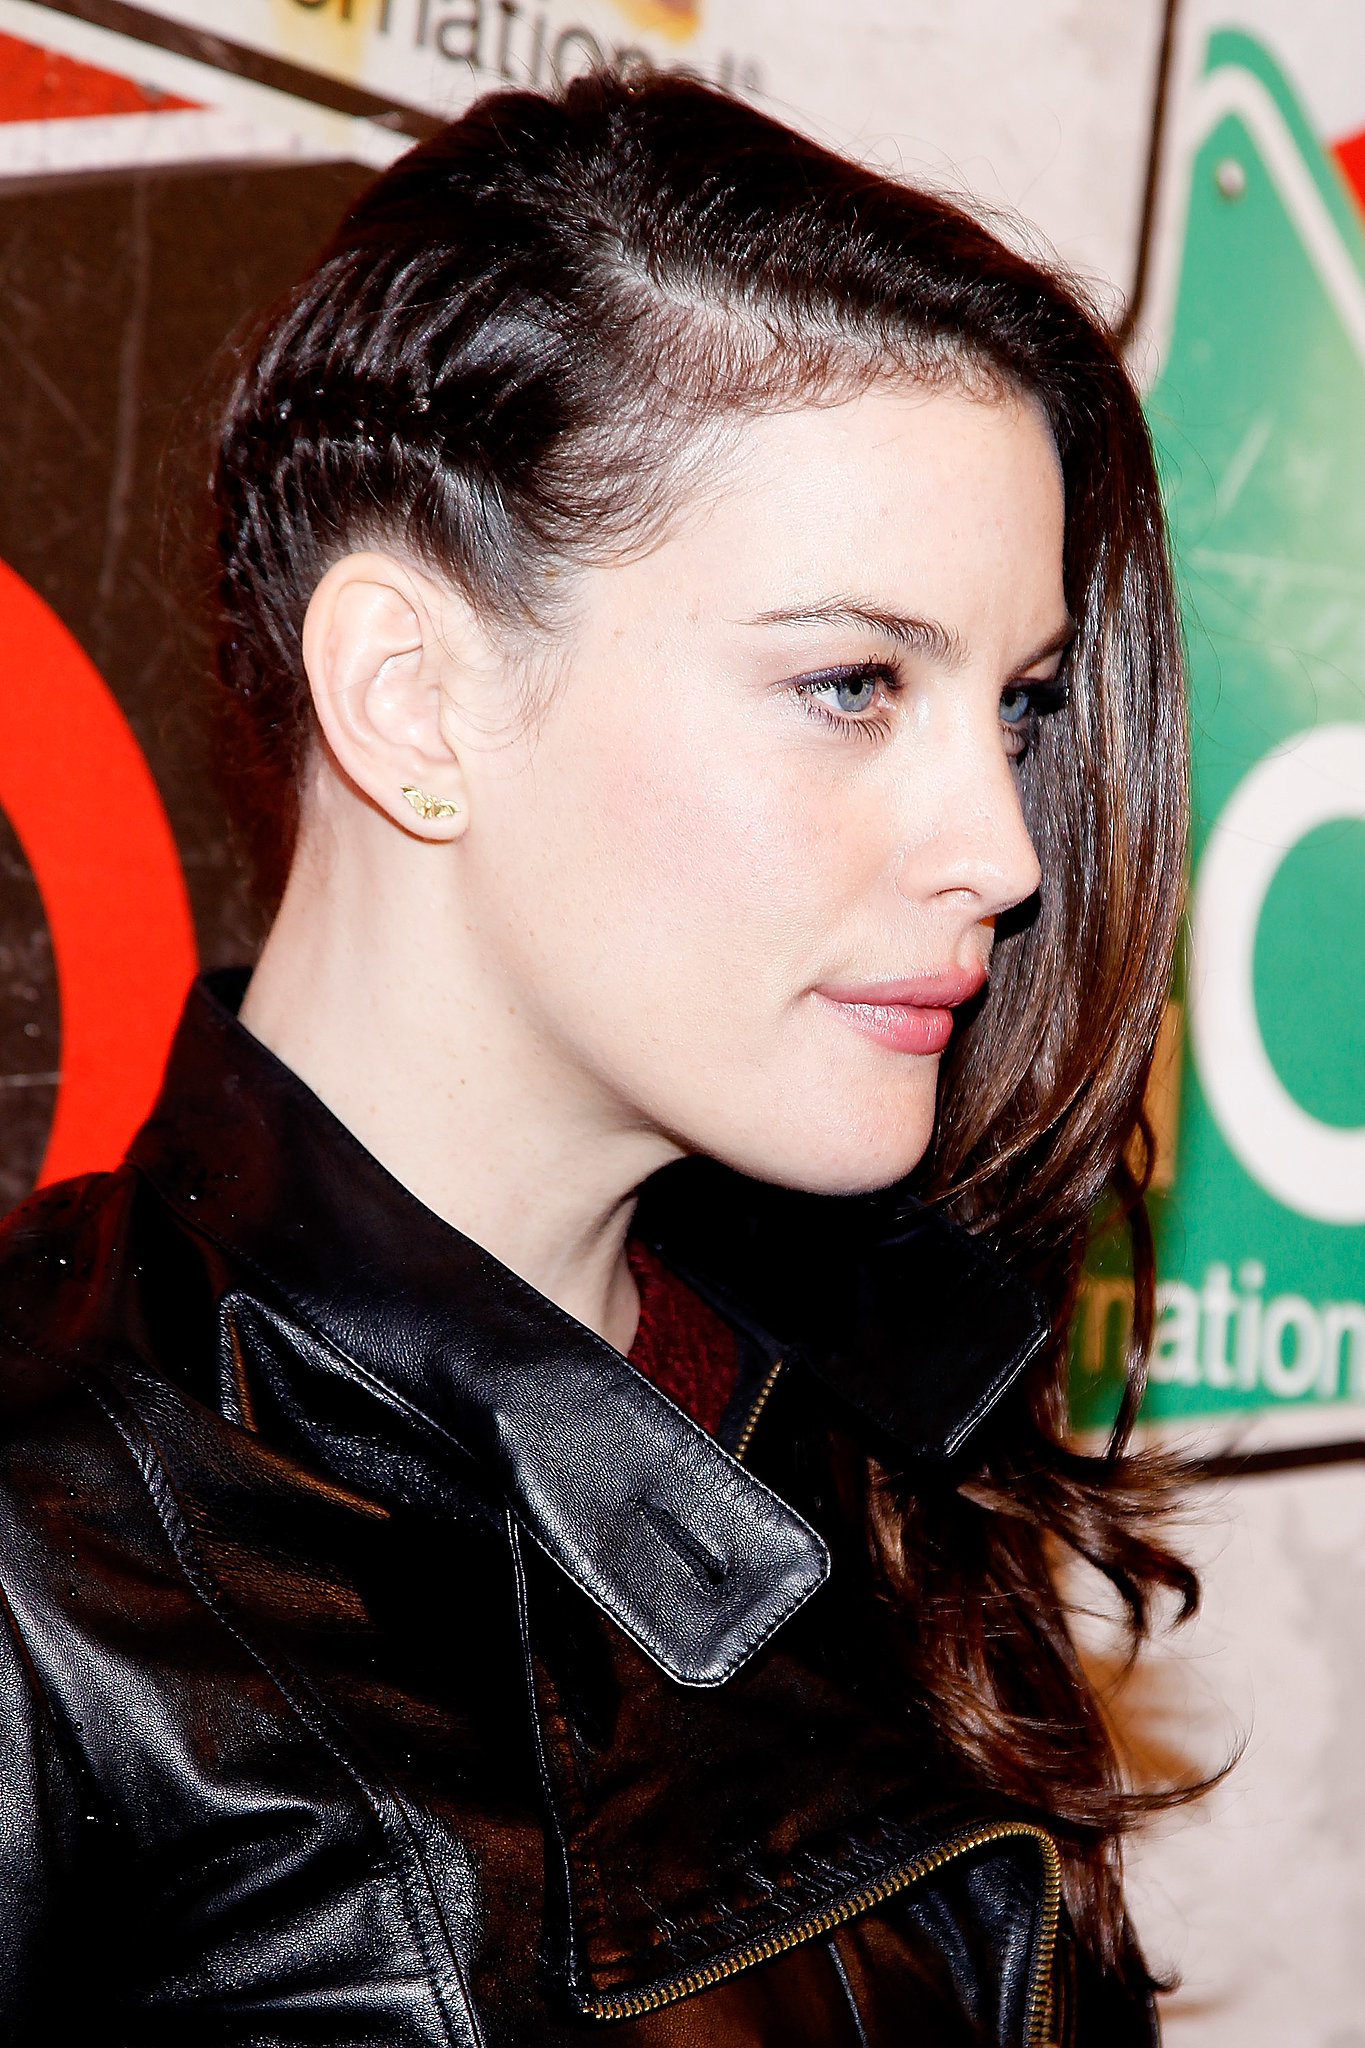 easiest-way-take-sideswept-style-from-glamorous-edgy